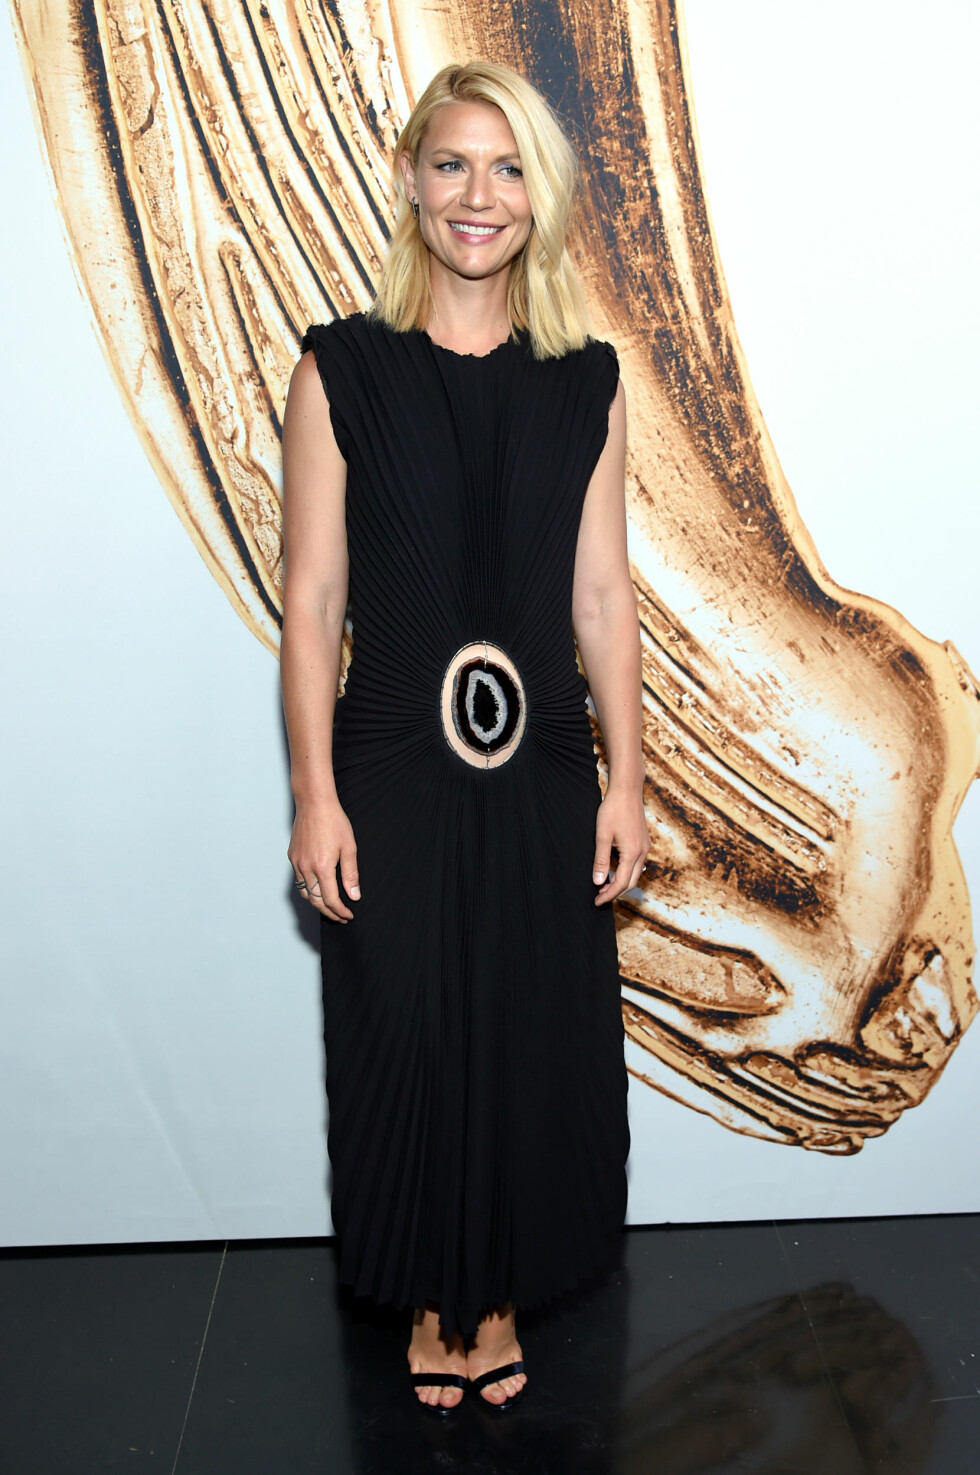 Clair Danes poses at the CFDA Fashion Awards at the Hammerstein Ballroom on Monday, June 6, 2016, in New York. (Photo by Evan Agostini/Invision/AP) Foto: Ap